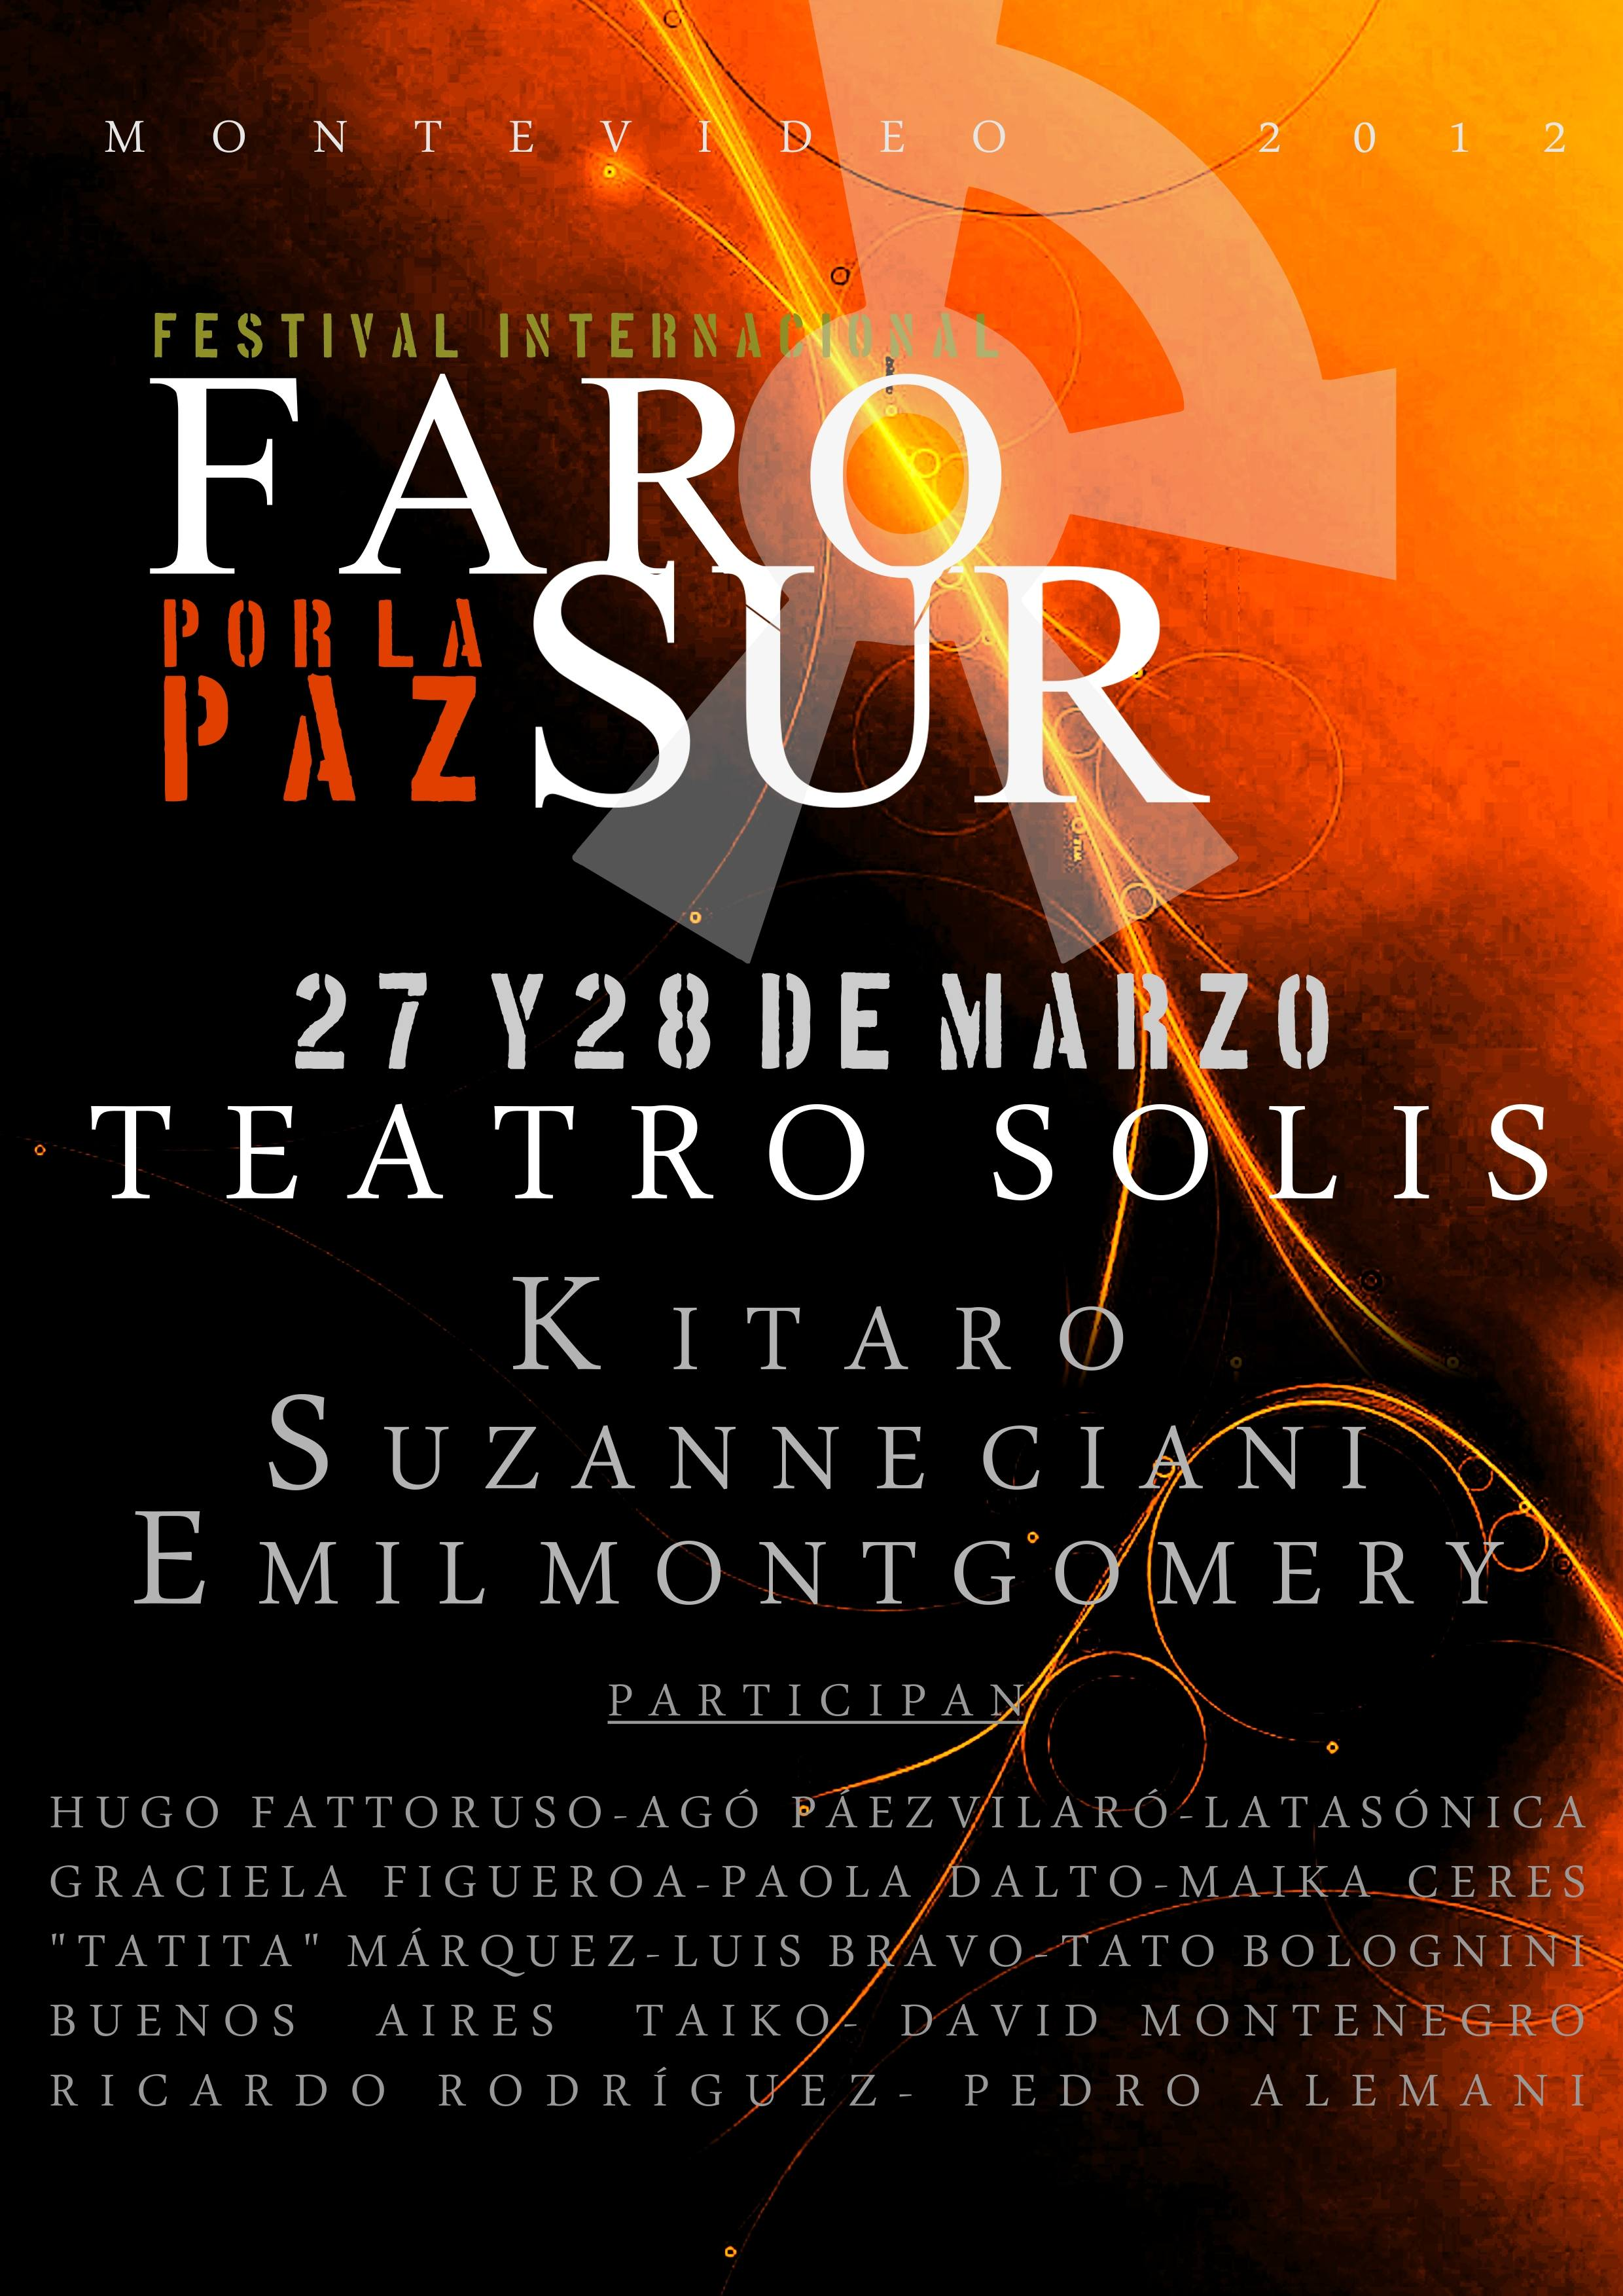 FAROSUR